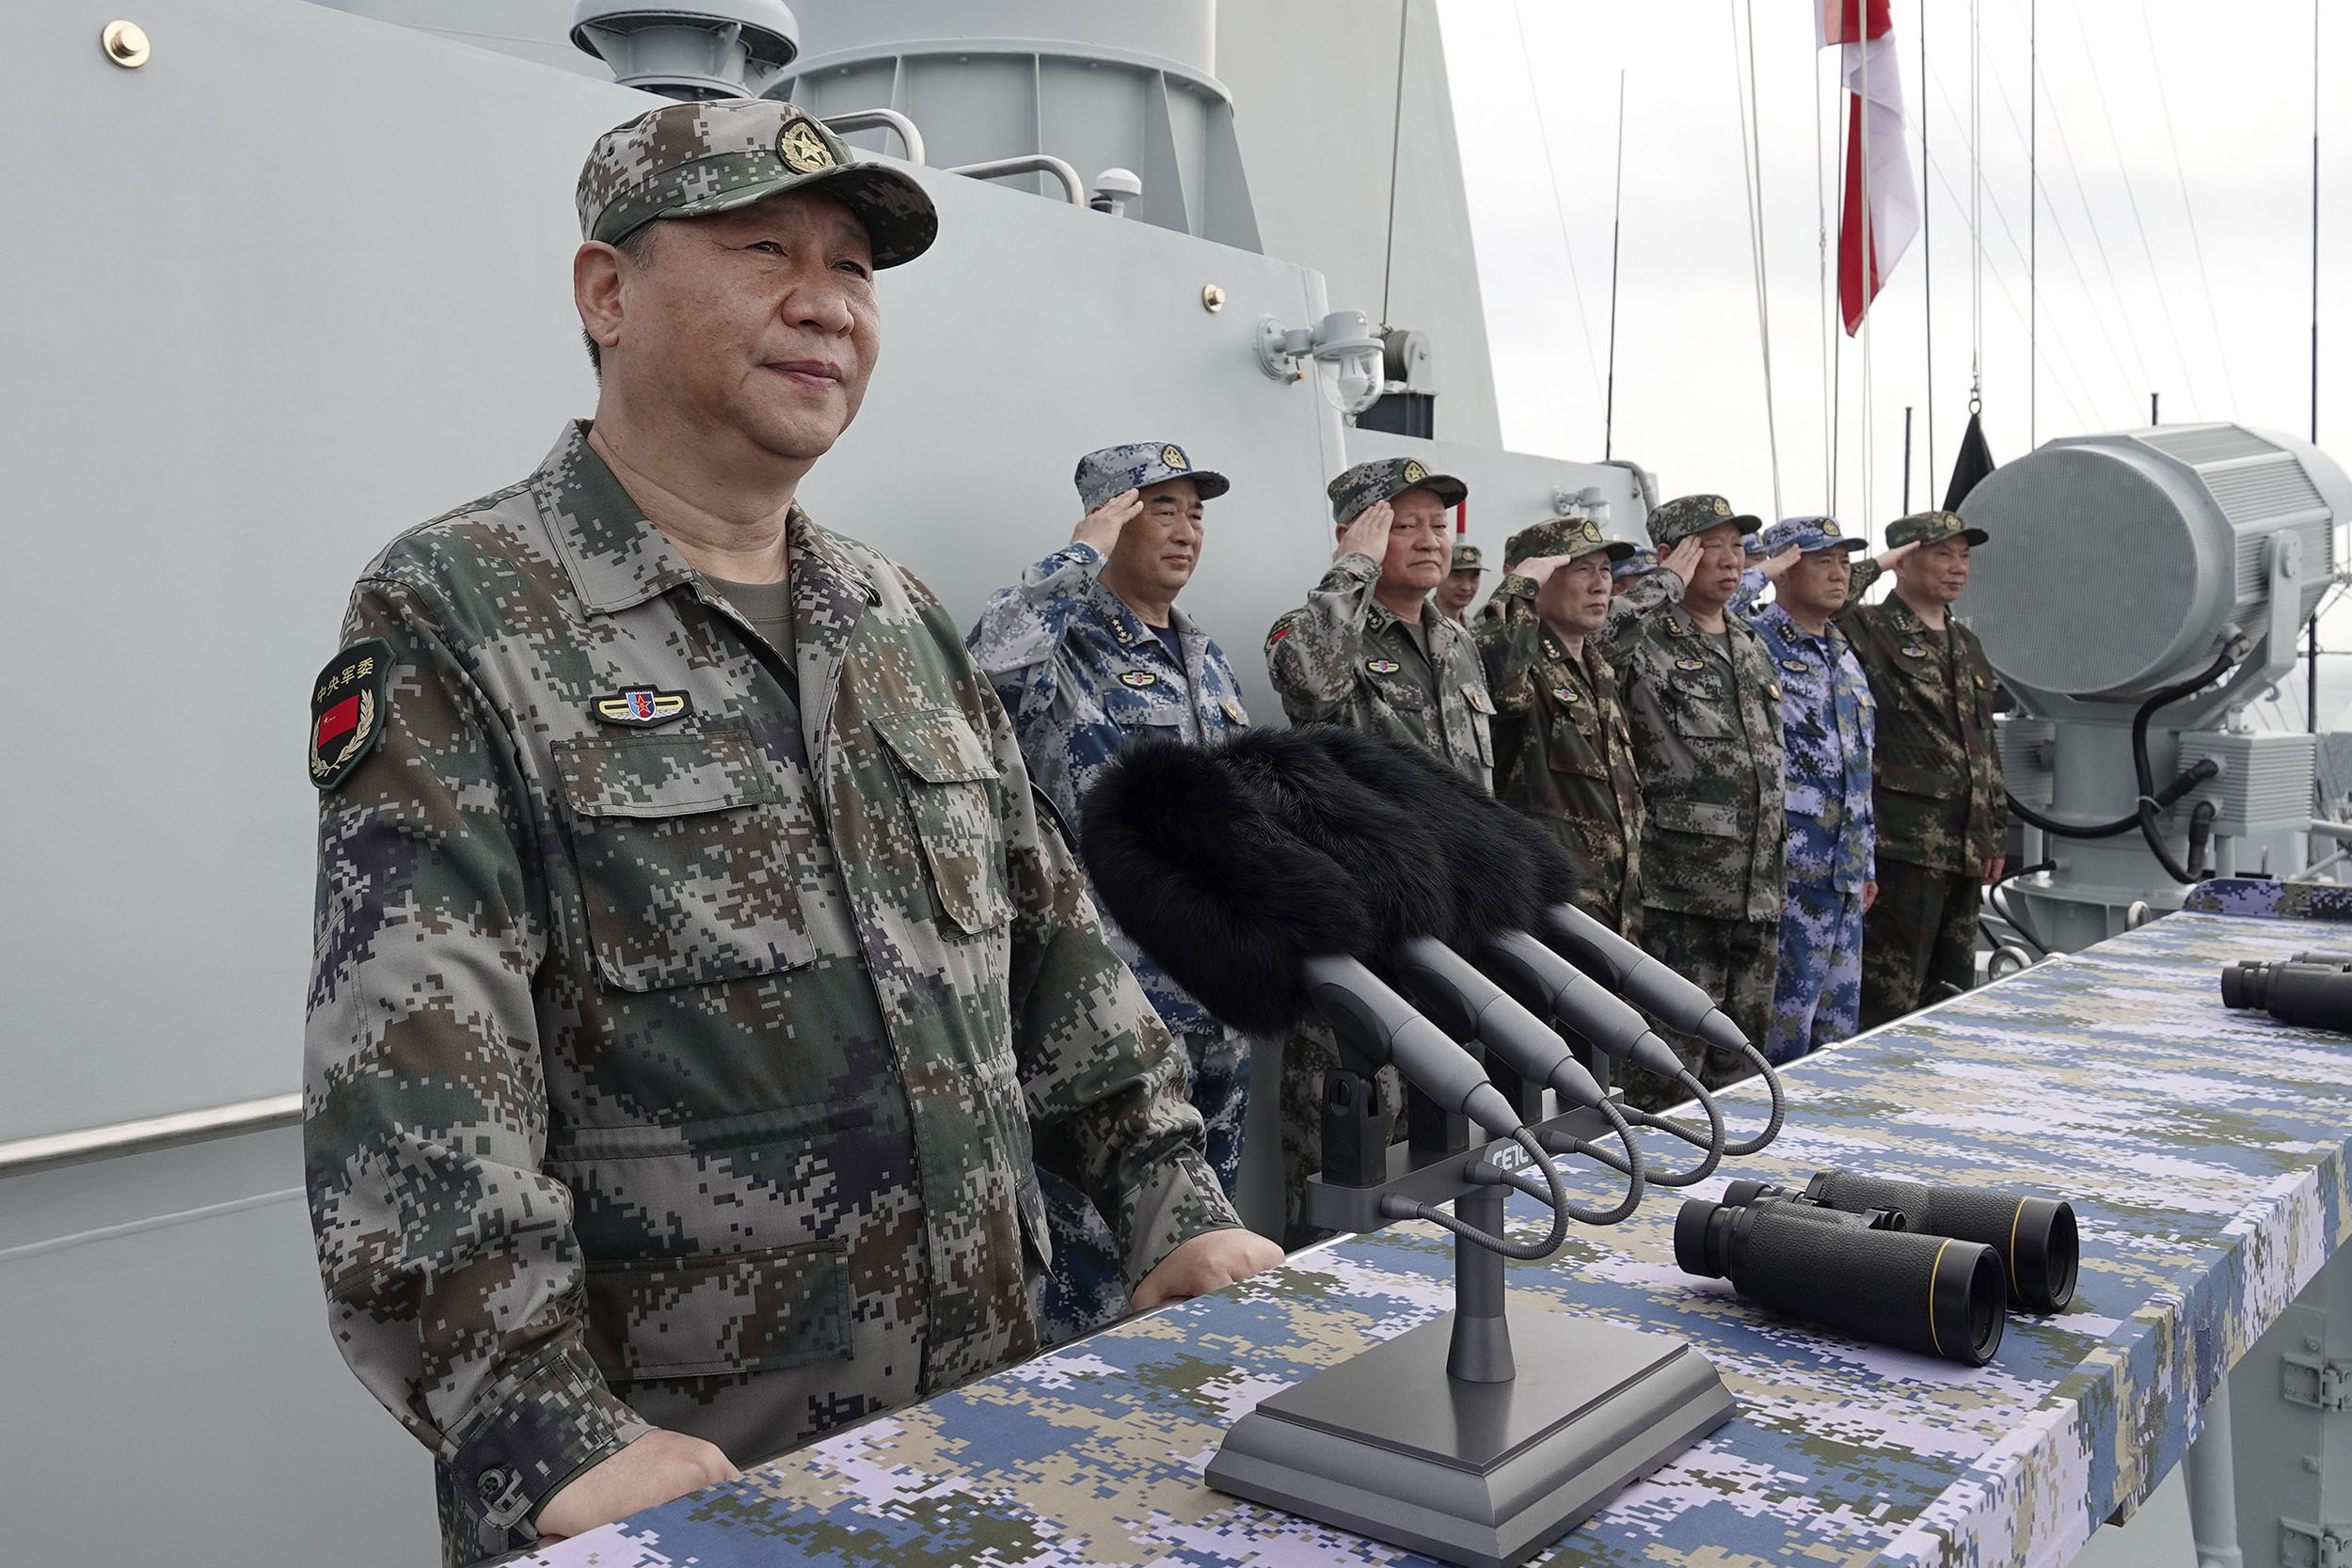 China's-leader-and-a-retired-U.S.-general-have-been-talking-about-'war.'-But-don't-panic.